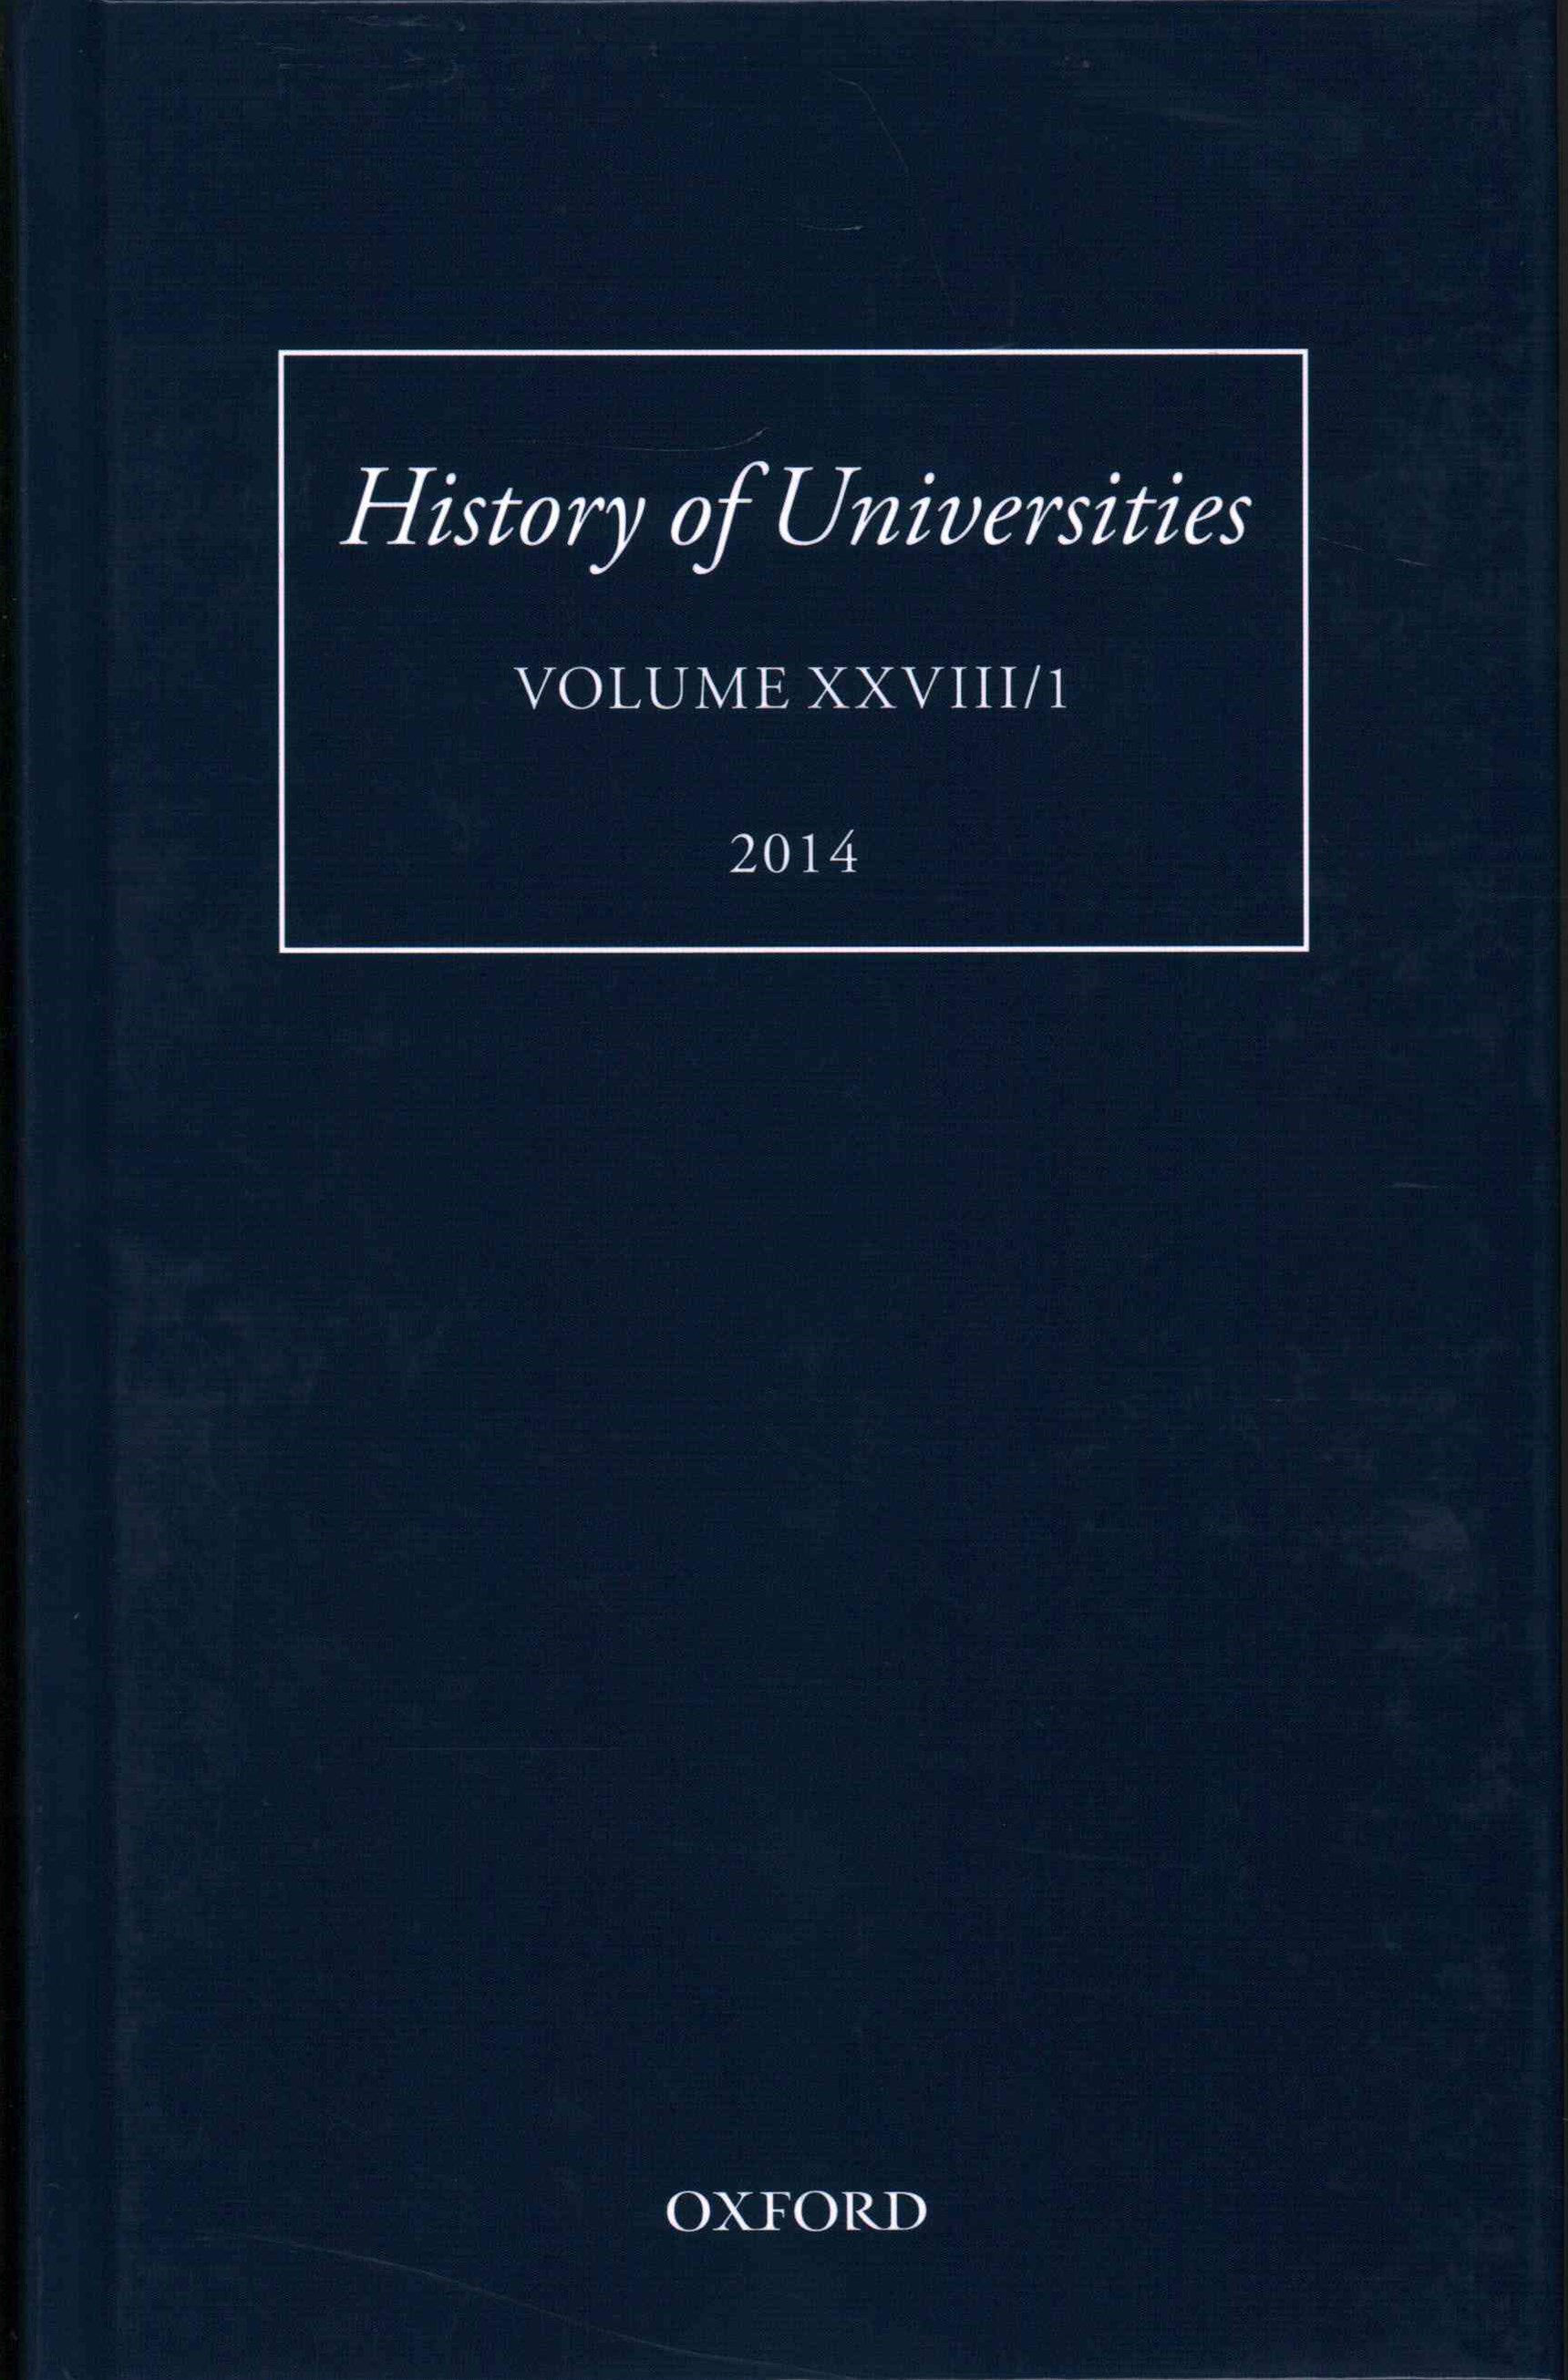 History of Universities, Volume XXVIII/1